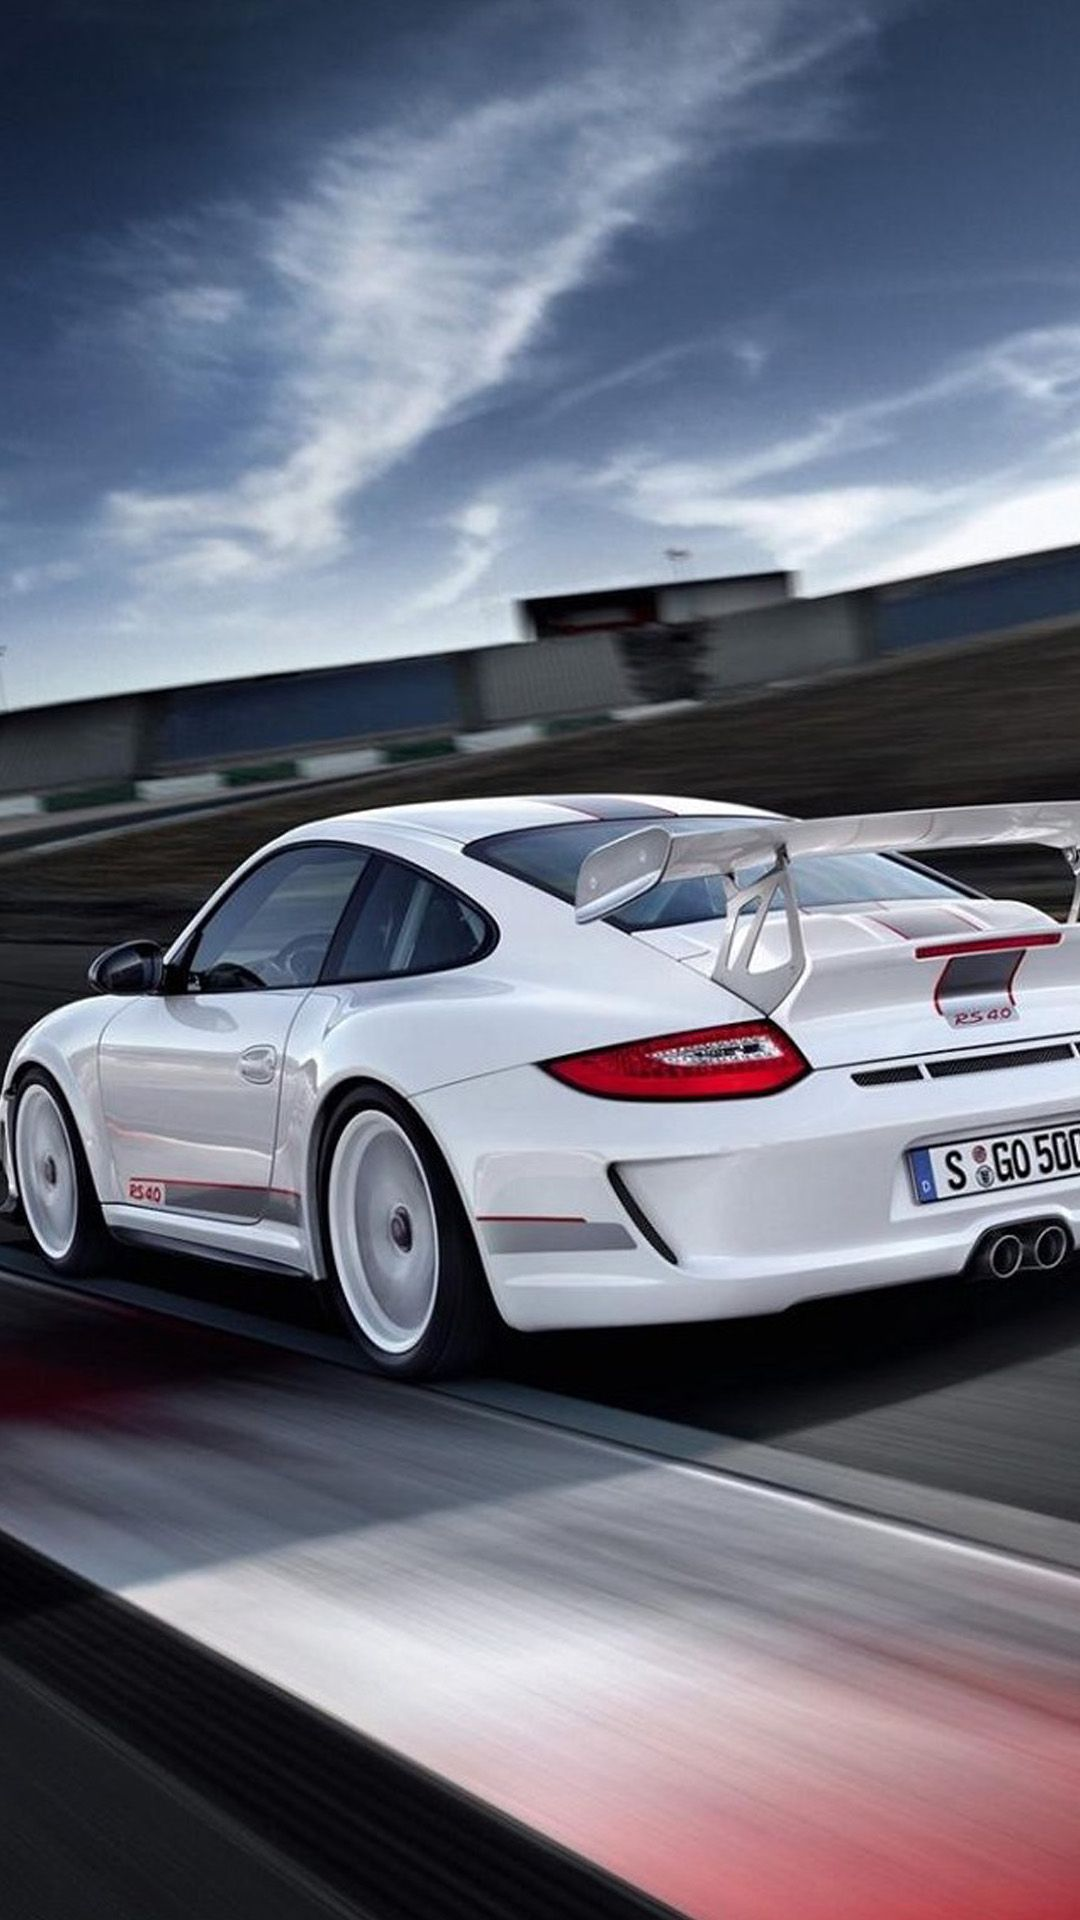 Porsche Gt3 Rs wallpaper for android